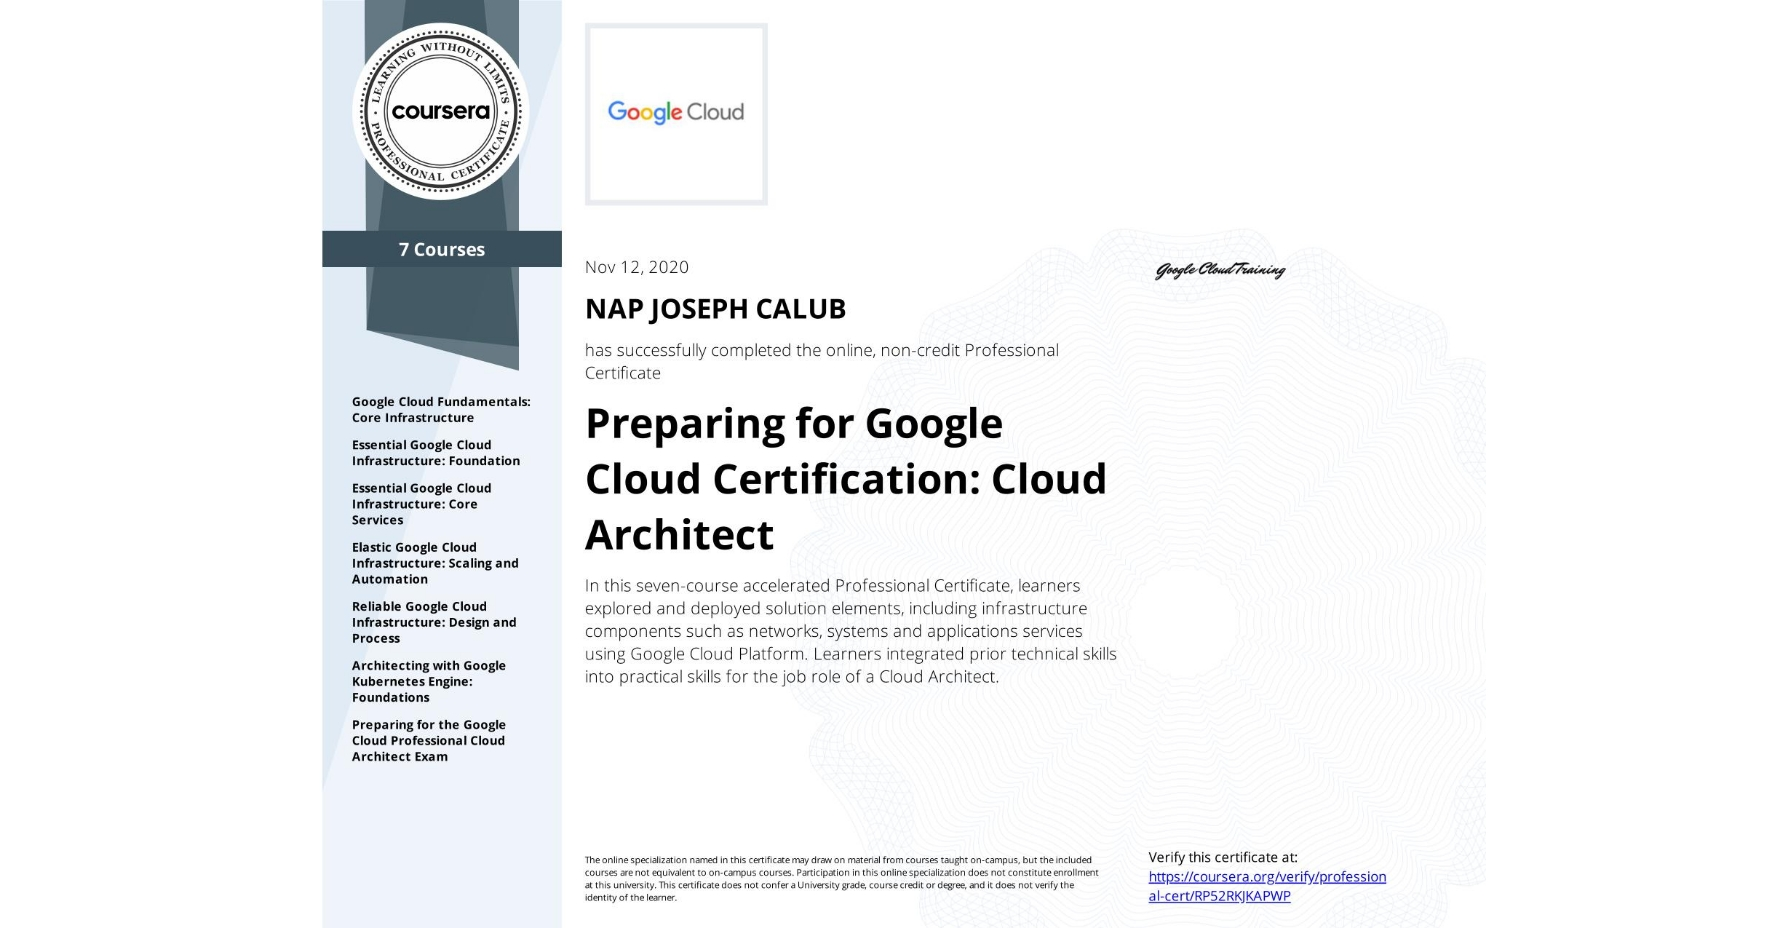 View certificate for NAP JOSEPH  CALUB, Preparing for Google Cloud Certification: Cloud Architect, offered through Coursera. In this seven-course accelerated Professional Certificate, learners explored and deployed solution elements, including infrastructure components such as networks, systems and applications services using Google Cloud Platform. Learners integrated prior technical skills into practical skills for the job role of a Cloud Architect.